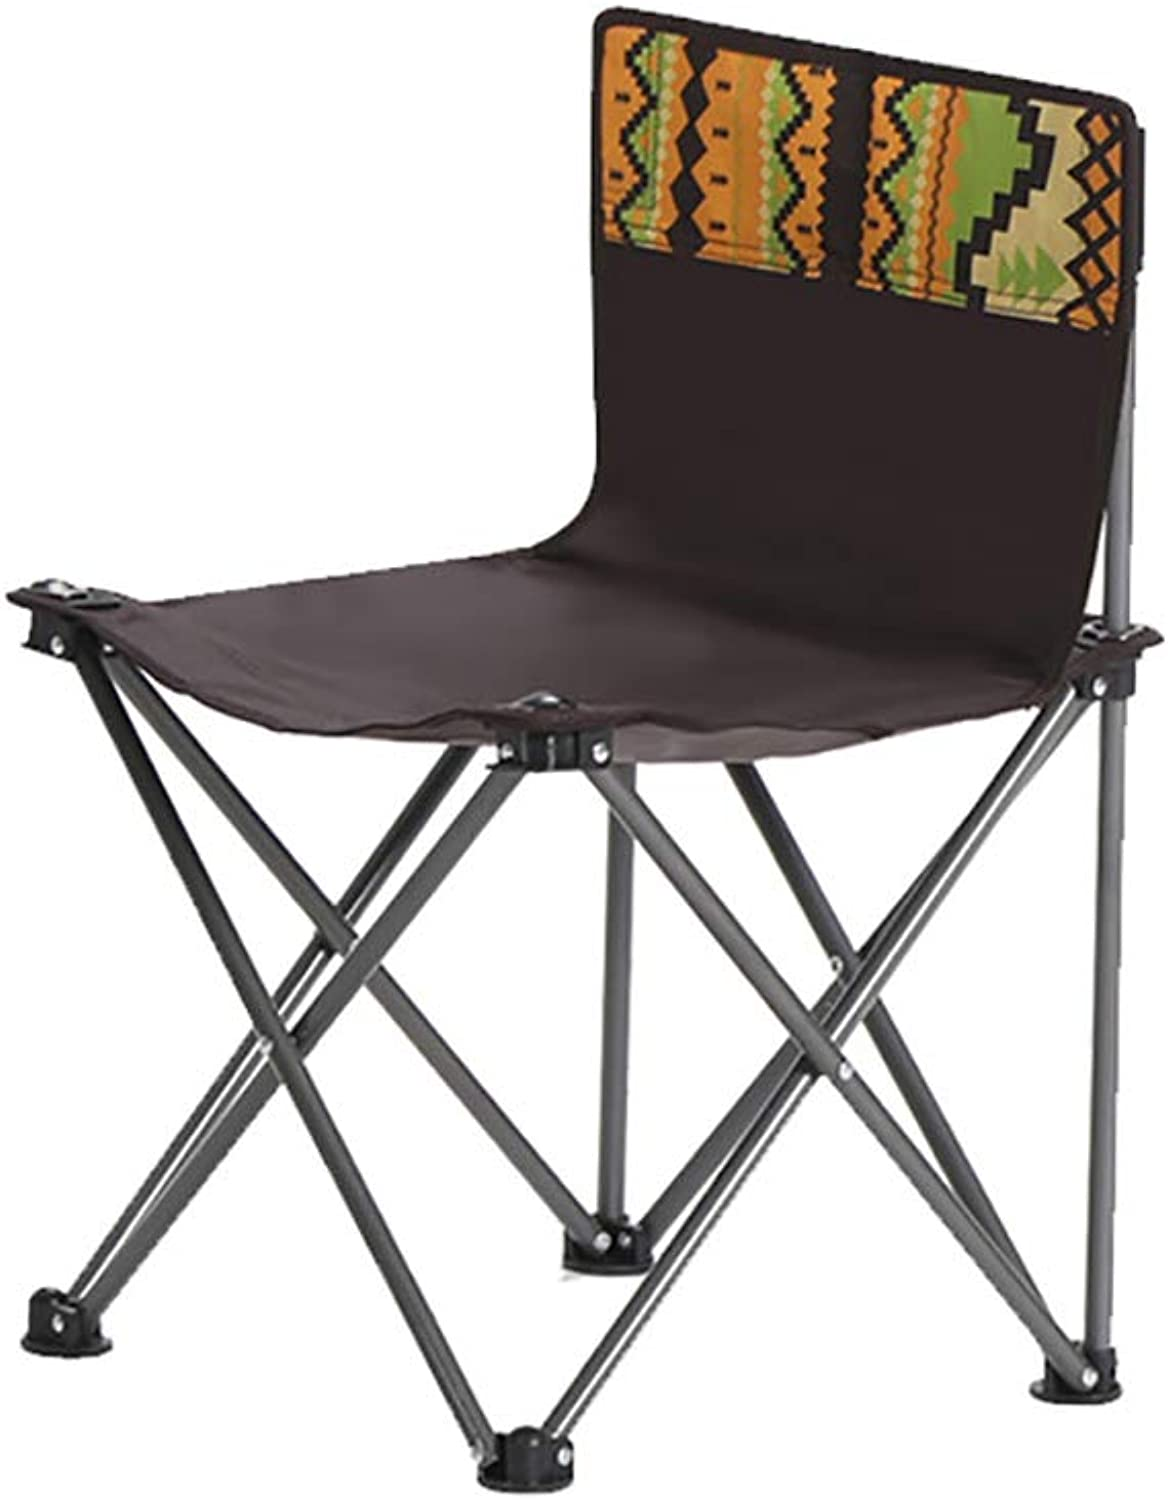 Small Camping Chair, Lightweight Portable Folding Stool with Carry Bag for Mountaineering Adventure Hiking Fishing Beach Picnic Party Gardening